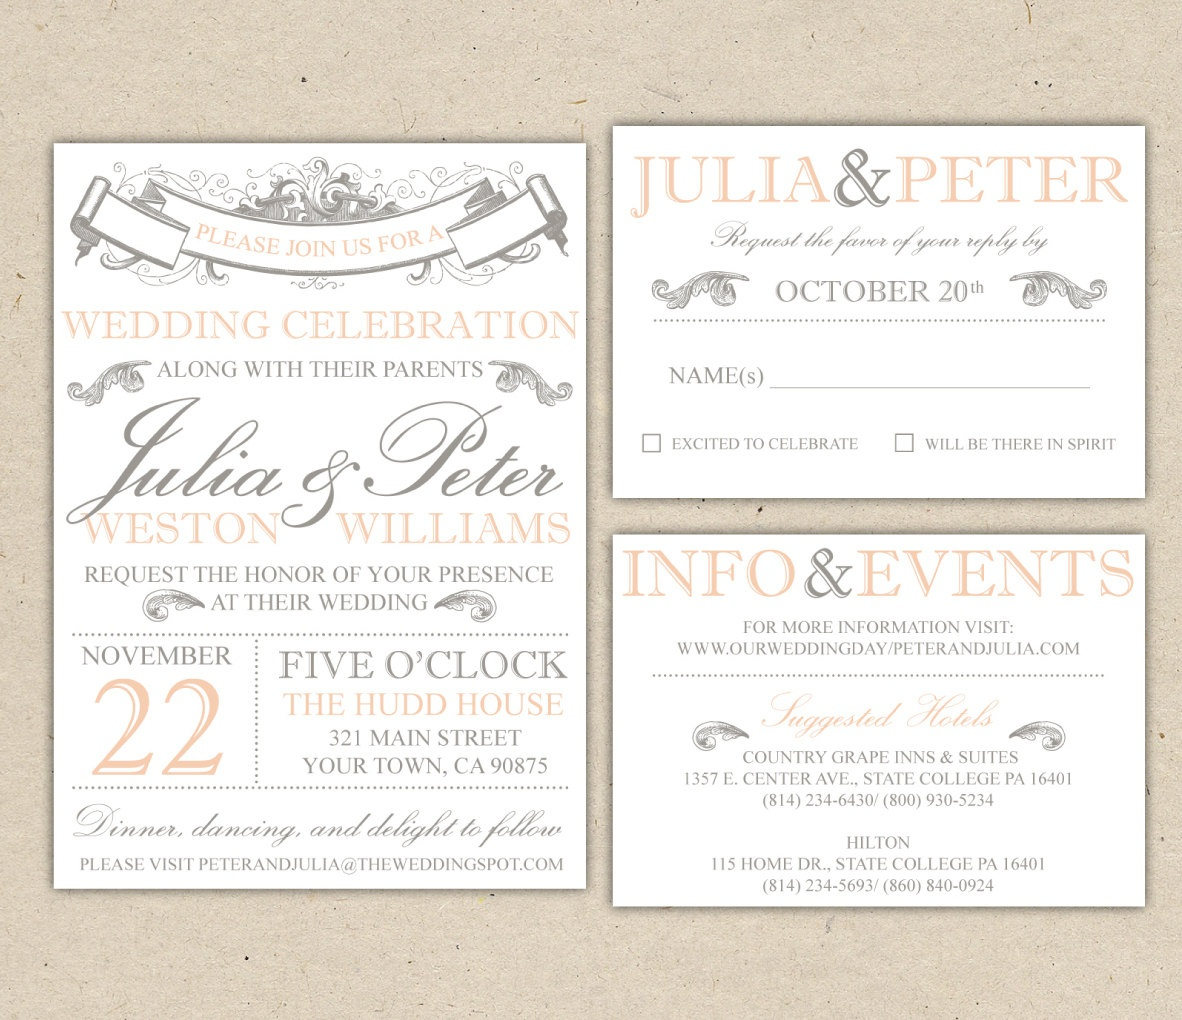 Free Printable Wedding Invitation Templates For Word Wedding - Free Printable Wedding Invitation Templates For Word